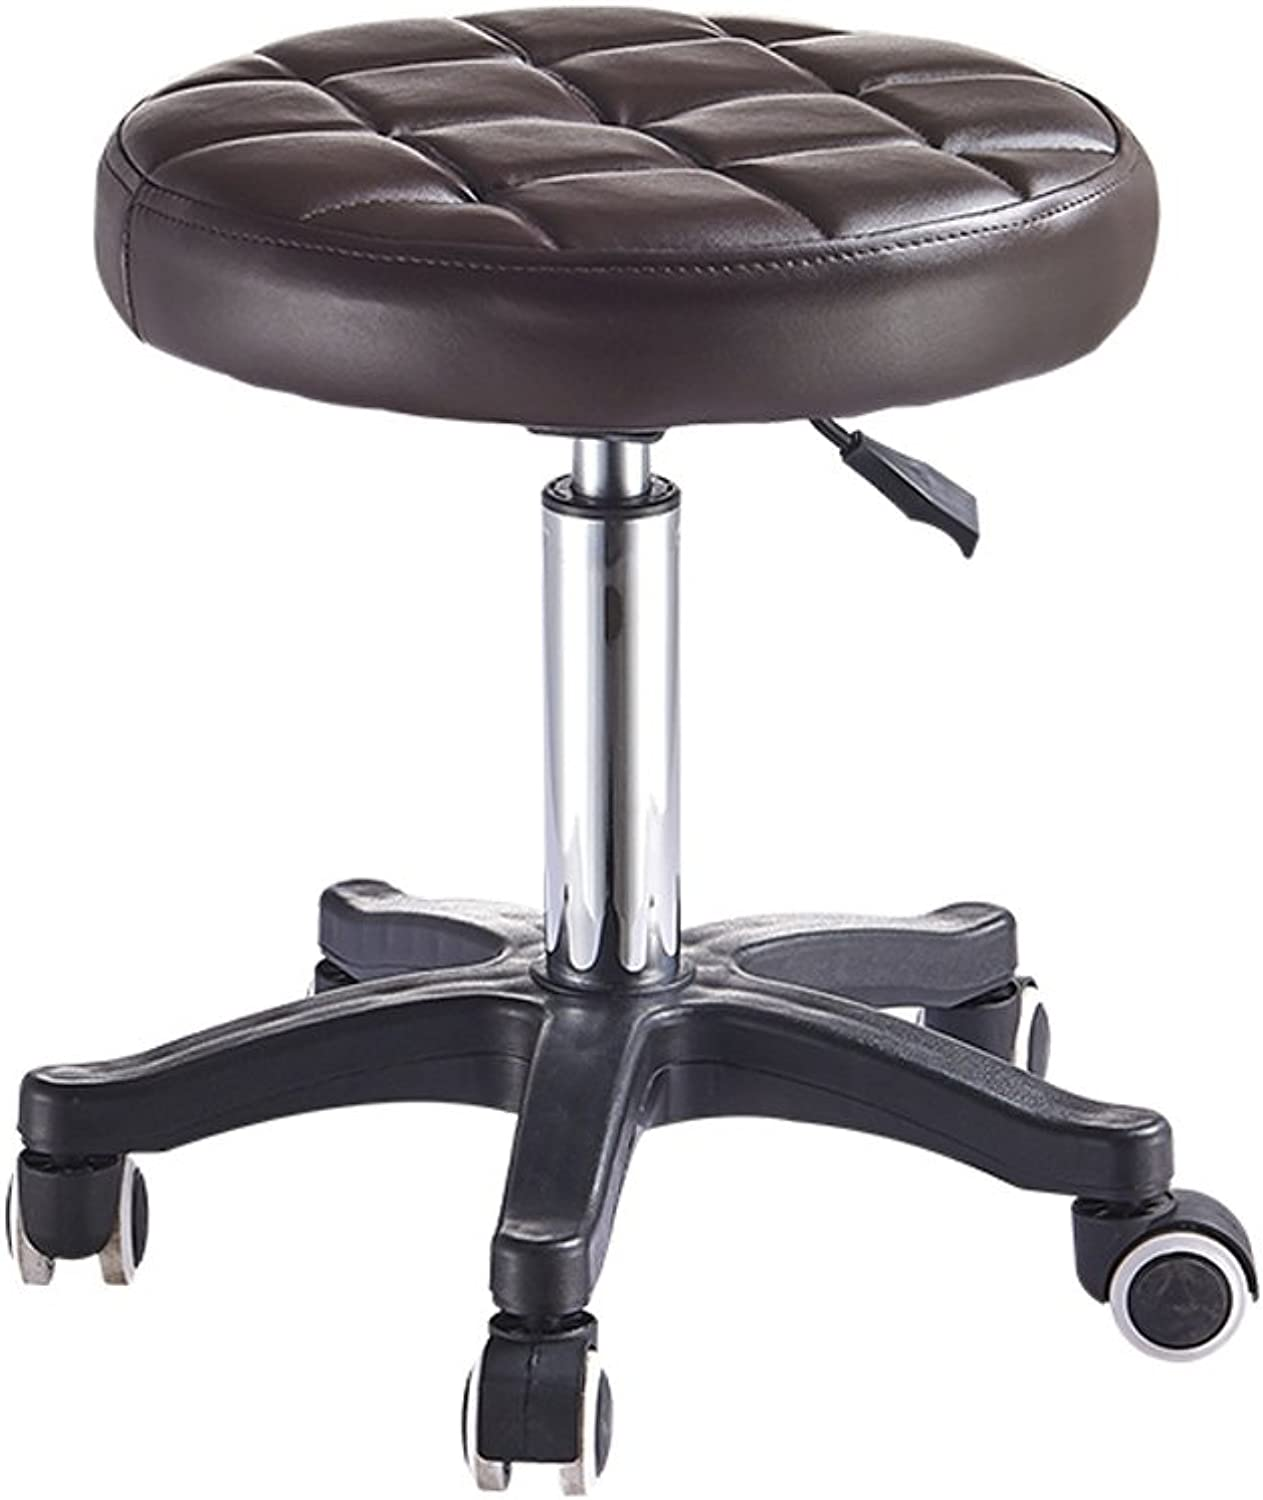 Height Adjustable Rolling Swivel Stool Chair with Round Seat Heavy Duty Base for Salon,Massage,Factory,Workshop,Counter,Kitchen (color   5)